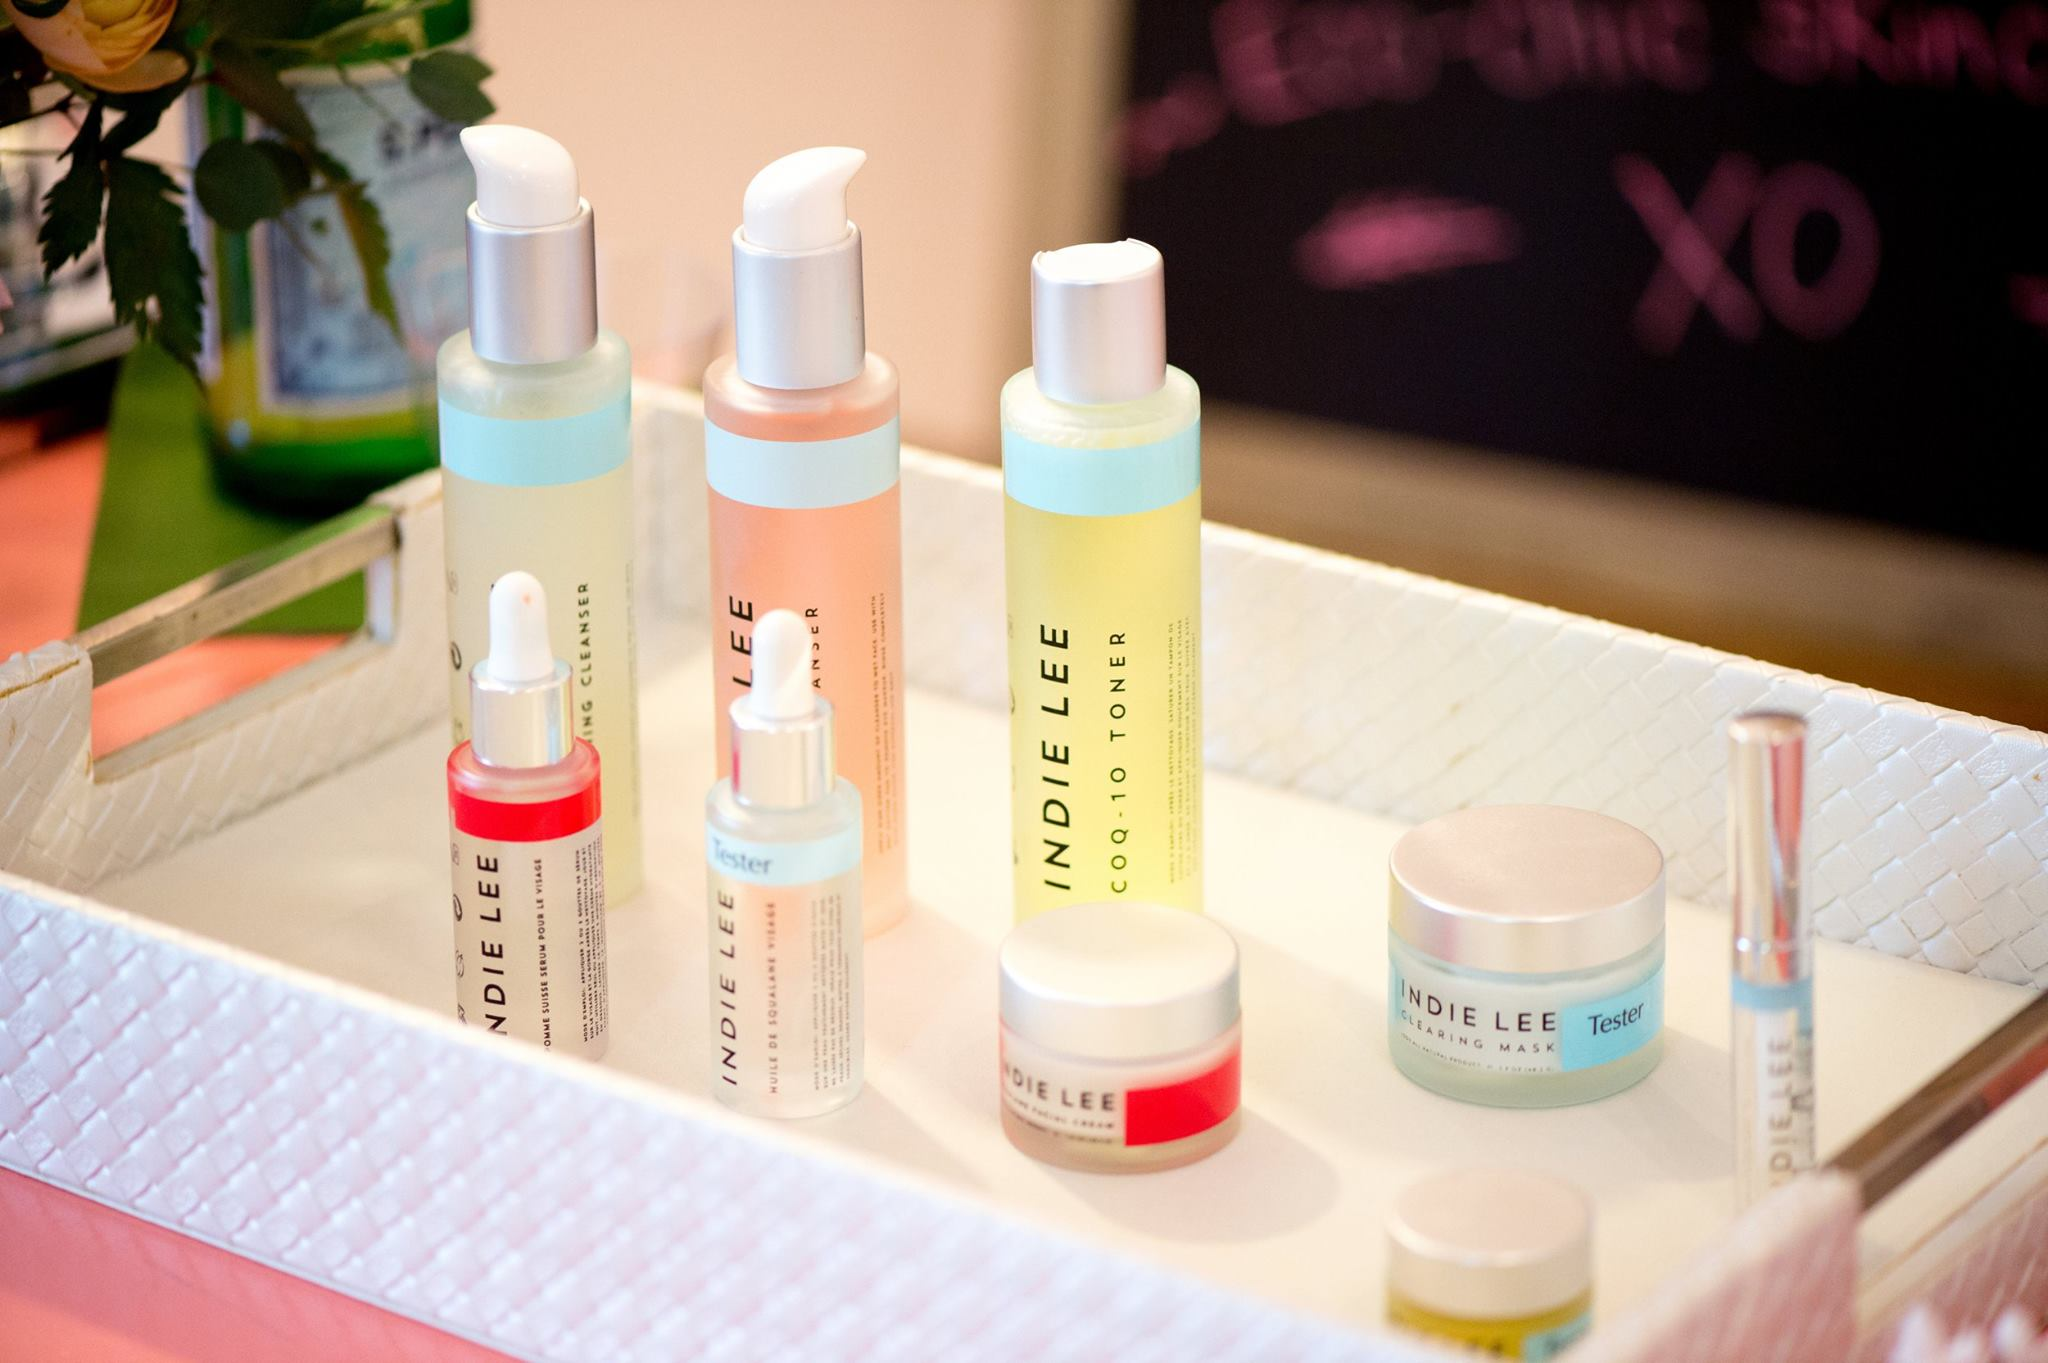 Colorful skincare products from the brand Indie Lee